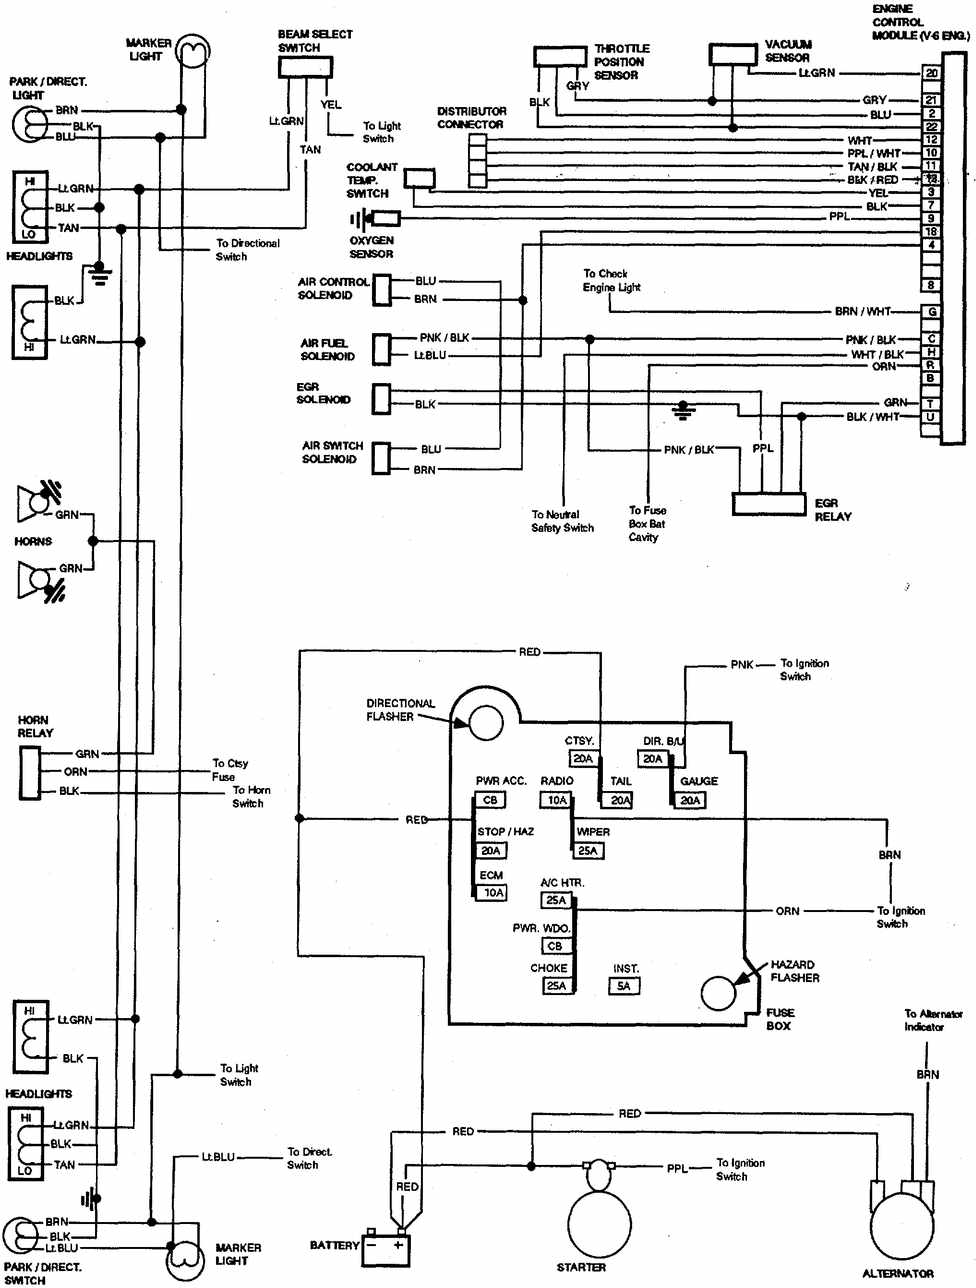 medium resolution of chevrolet v8 trucks 1981 1987 electrical wiring diagram